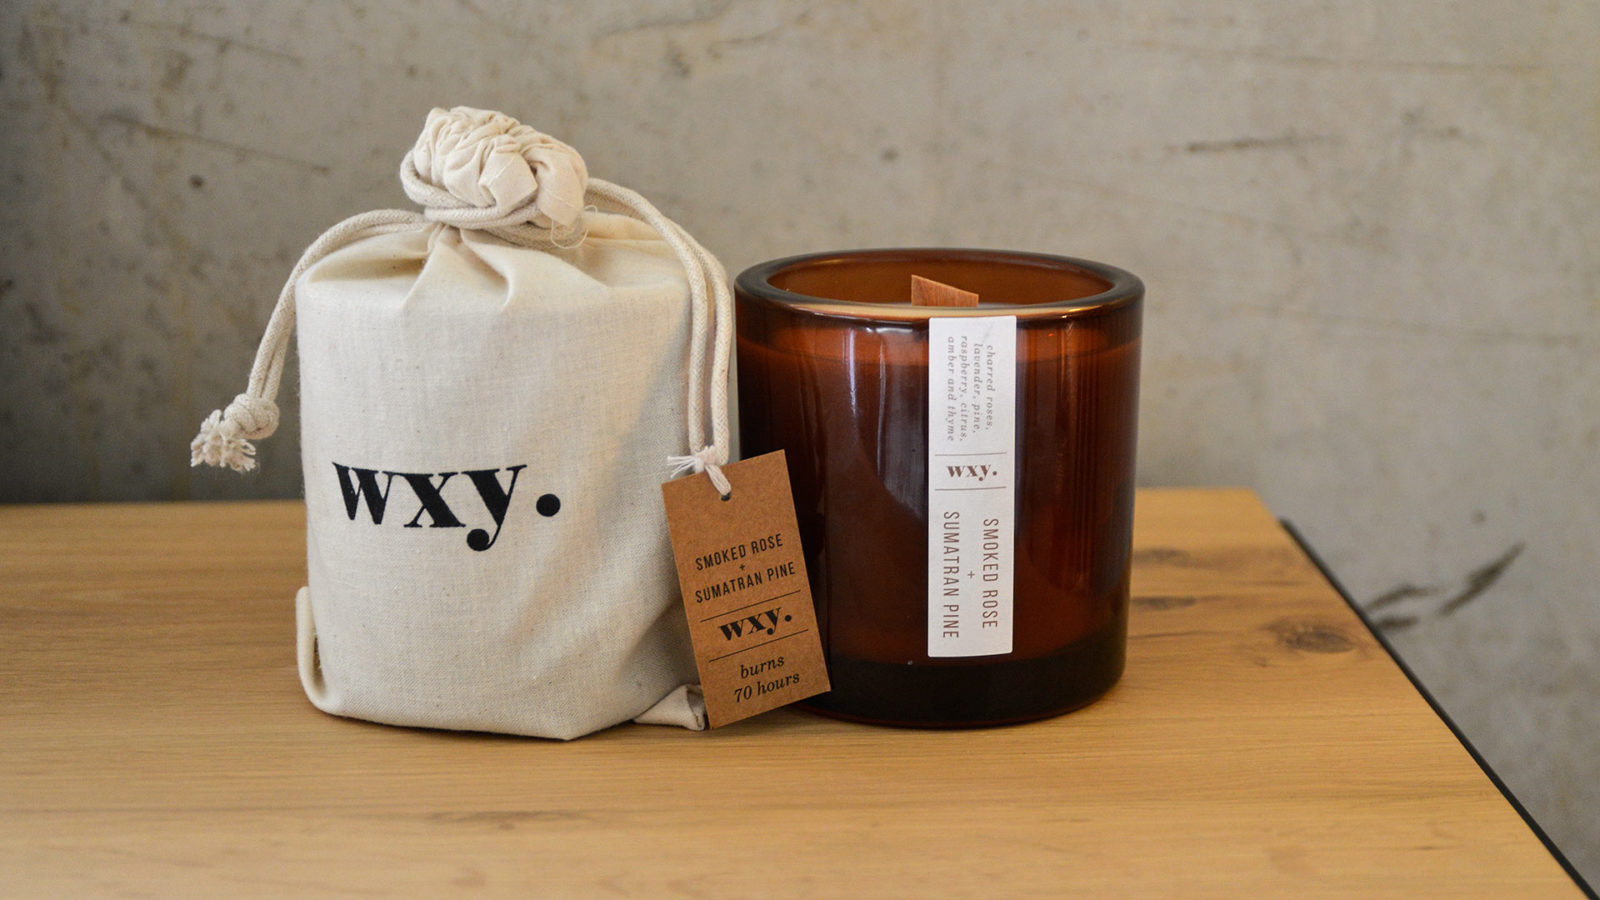 Smoked Rose Scented Candle